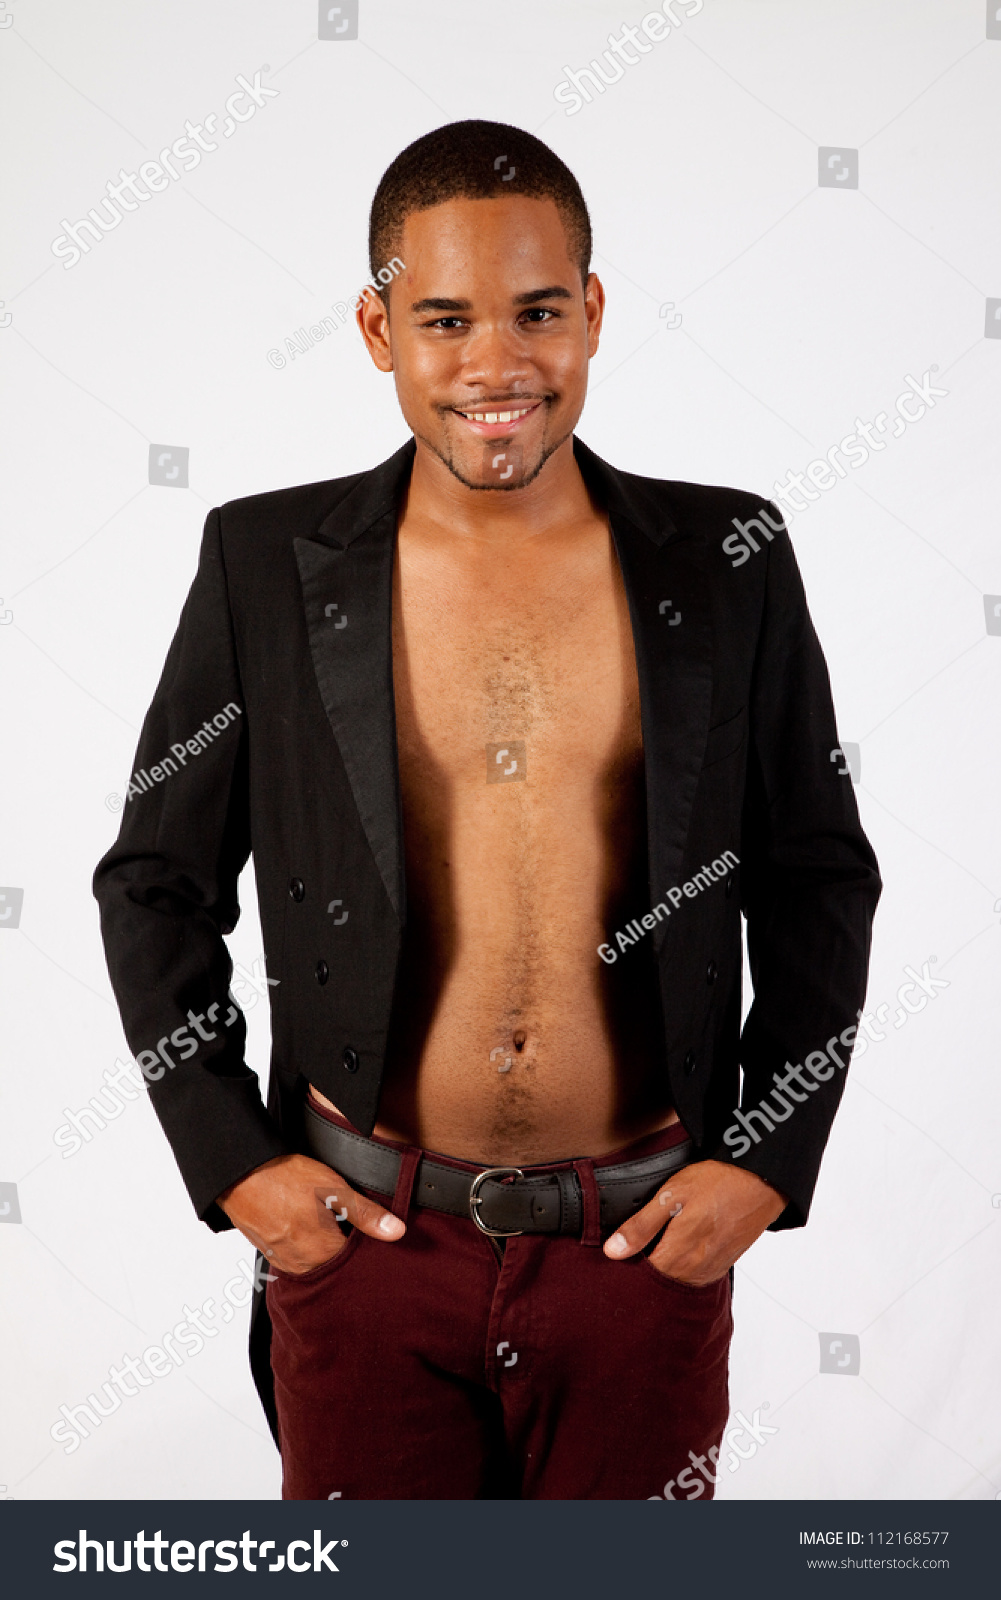 Thoughtful Black Man No Shirt On Stock Photo 112168577 - Shutterstock